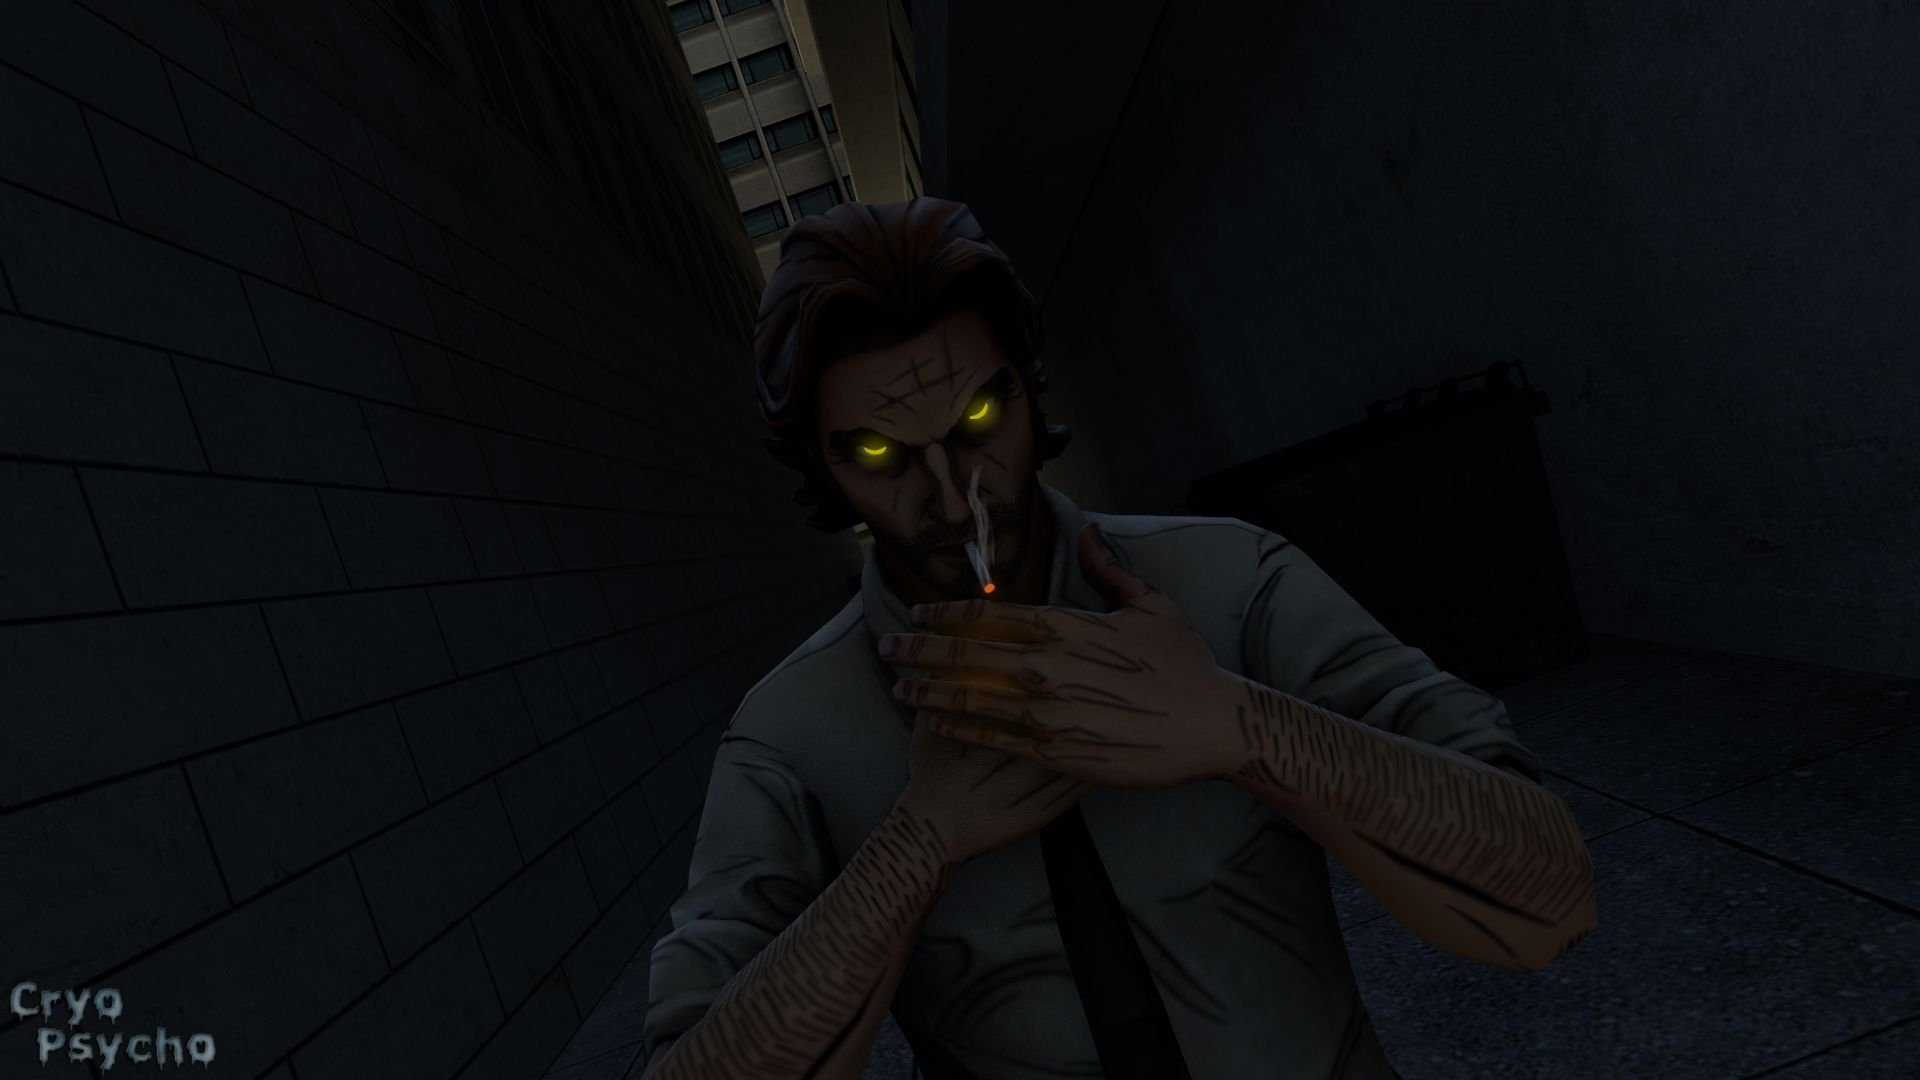 El Fondo De Pantalla Wolf Among Us Bigby Wolf Por Cryo Psycho The Wolf Among Us Wolf Wallpaper